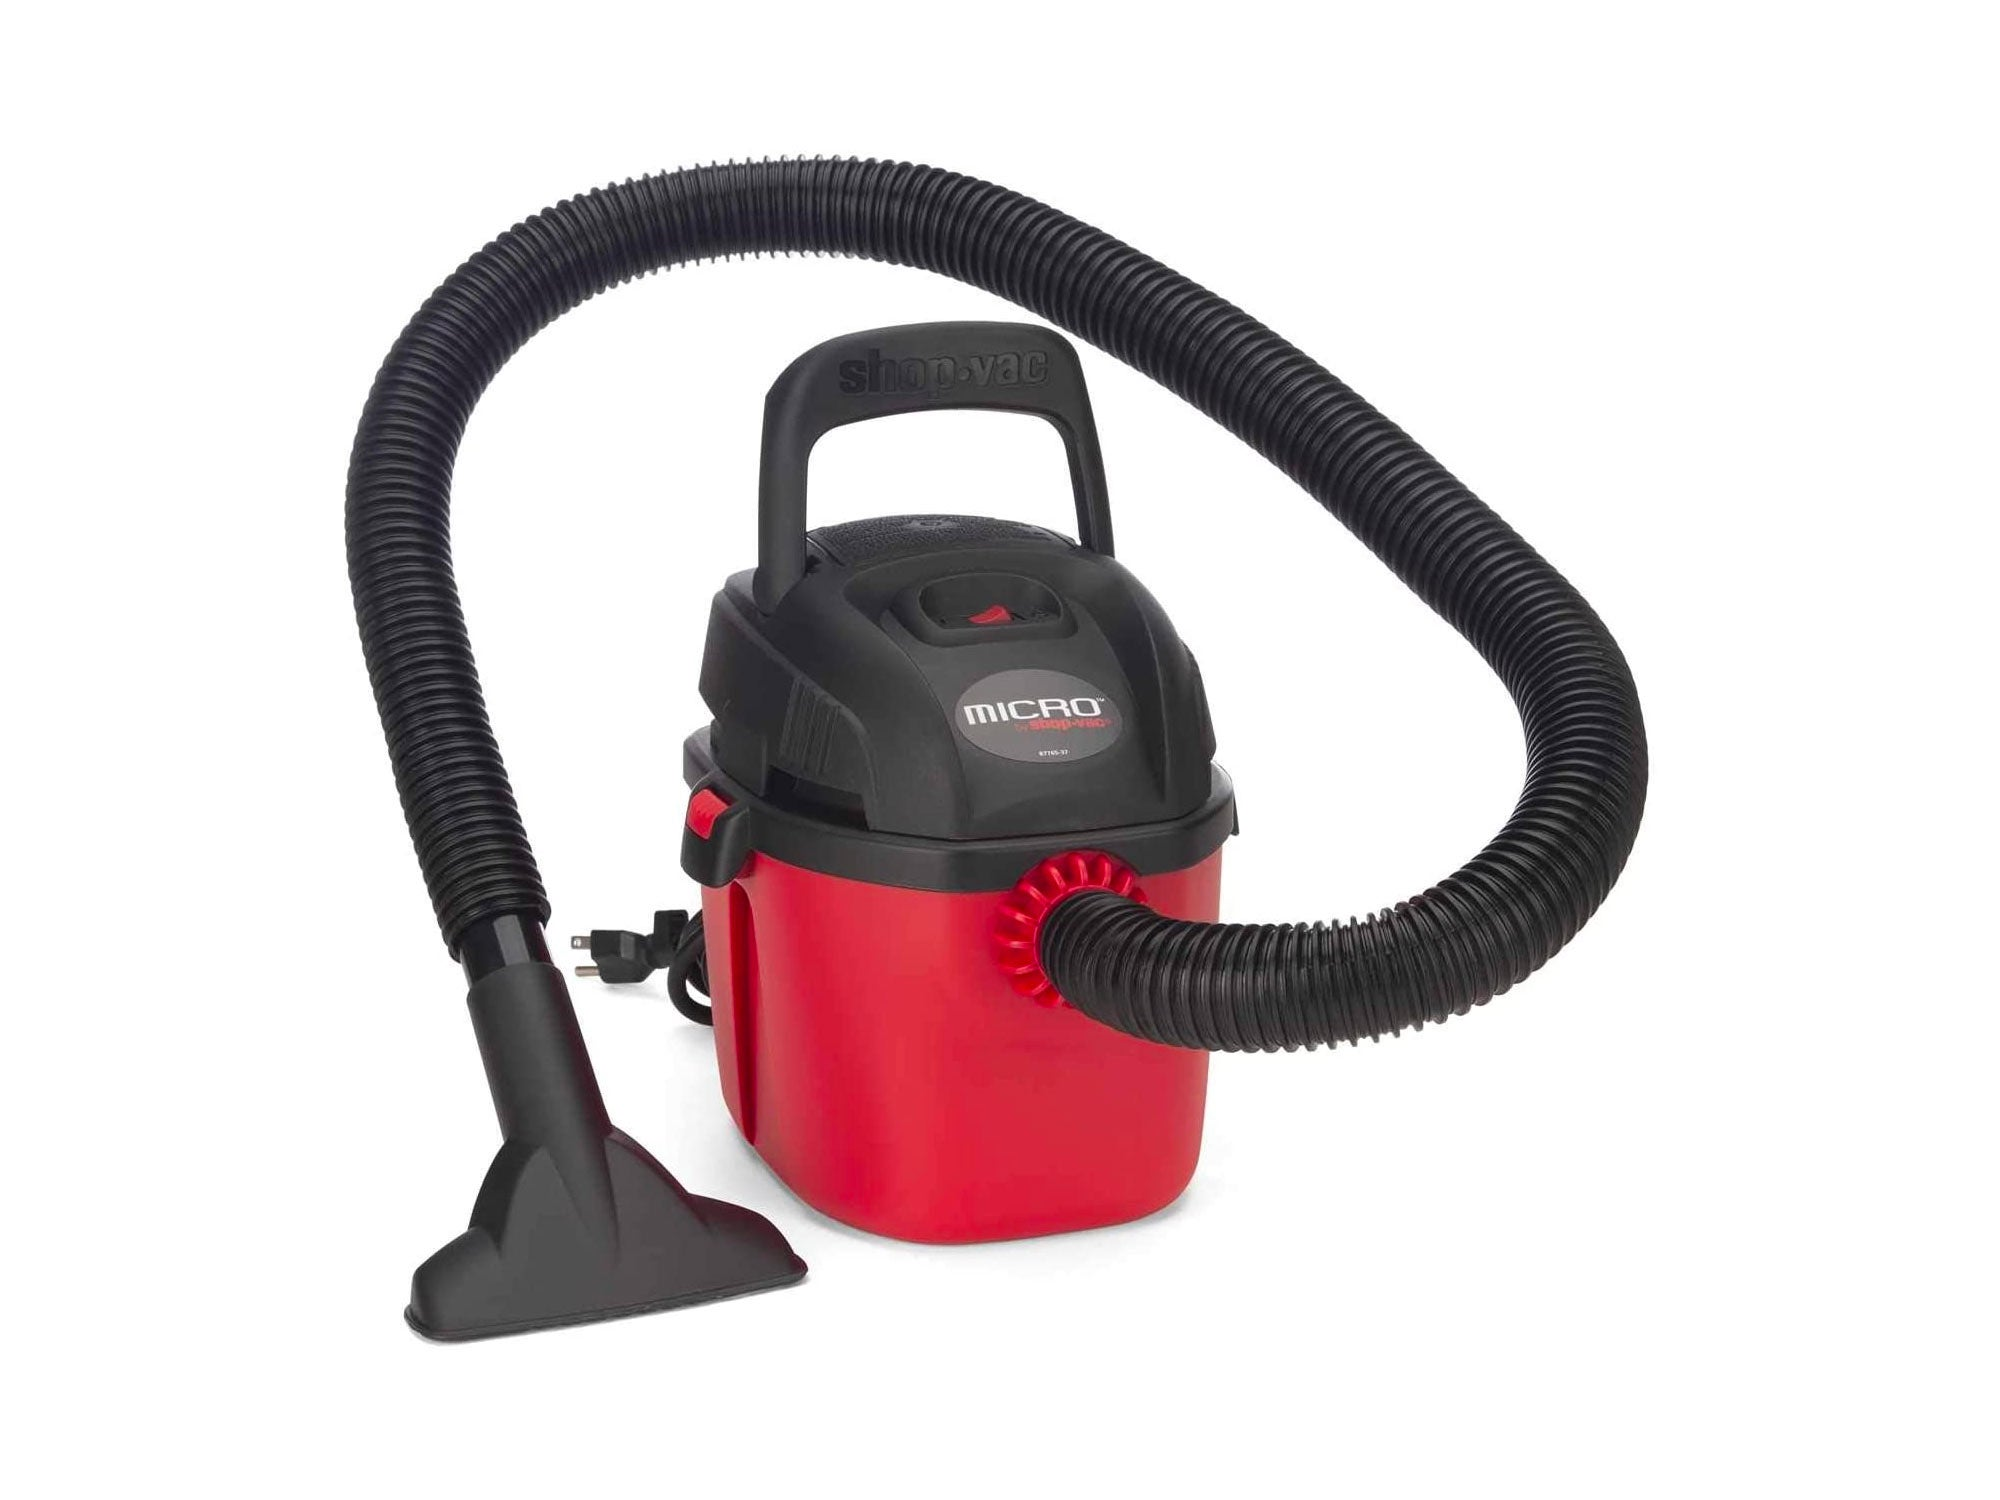 Shop-Vac Micro Wet/Dry Vac Portable Compact Micro Vacuum with Collapsible Handle Wall Bracket & Multifunction Accessories Uses Type A Filter Bag & Type MM Foam Sleeve